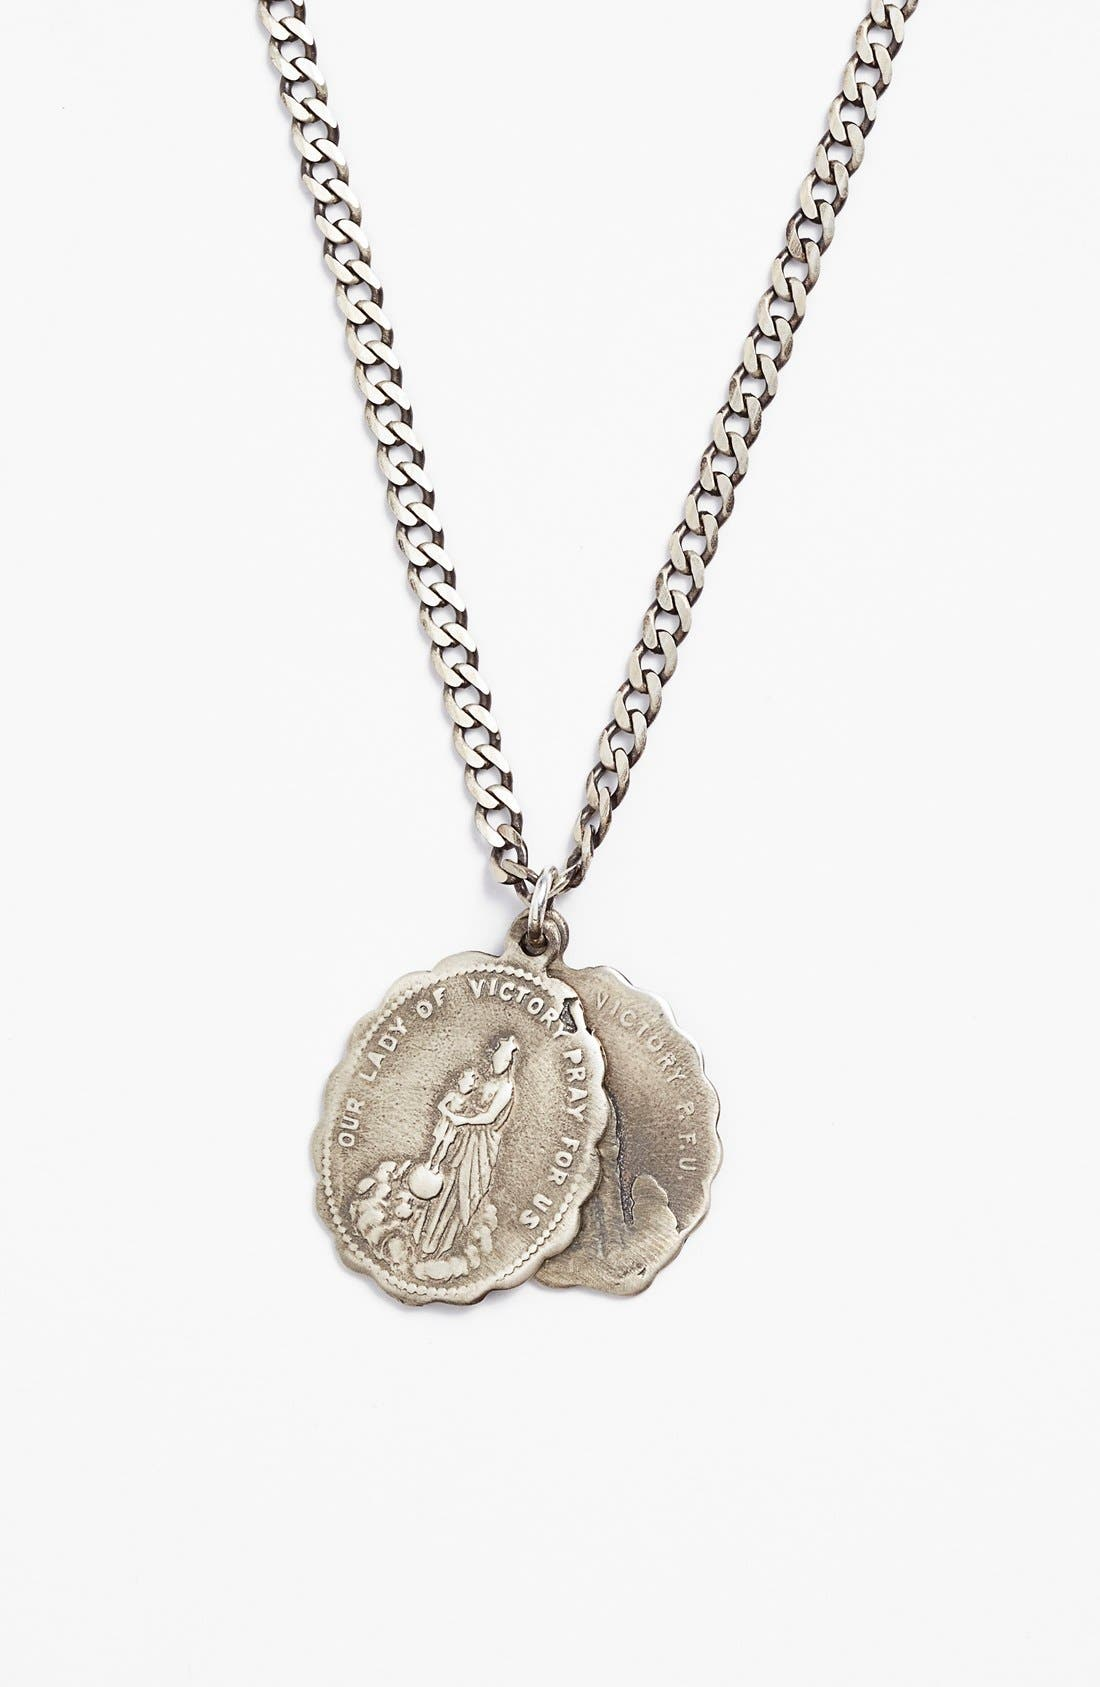 Necklaces for guys cheap dress